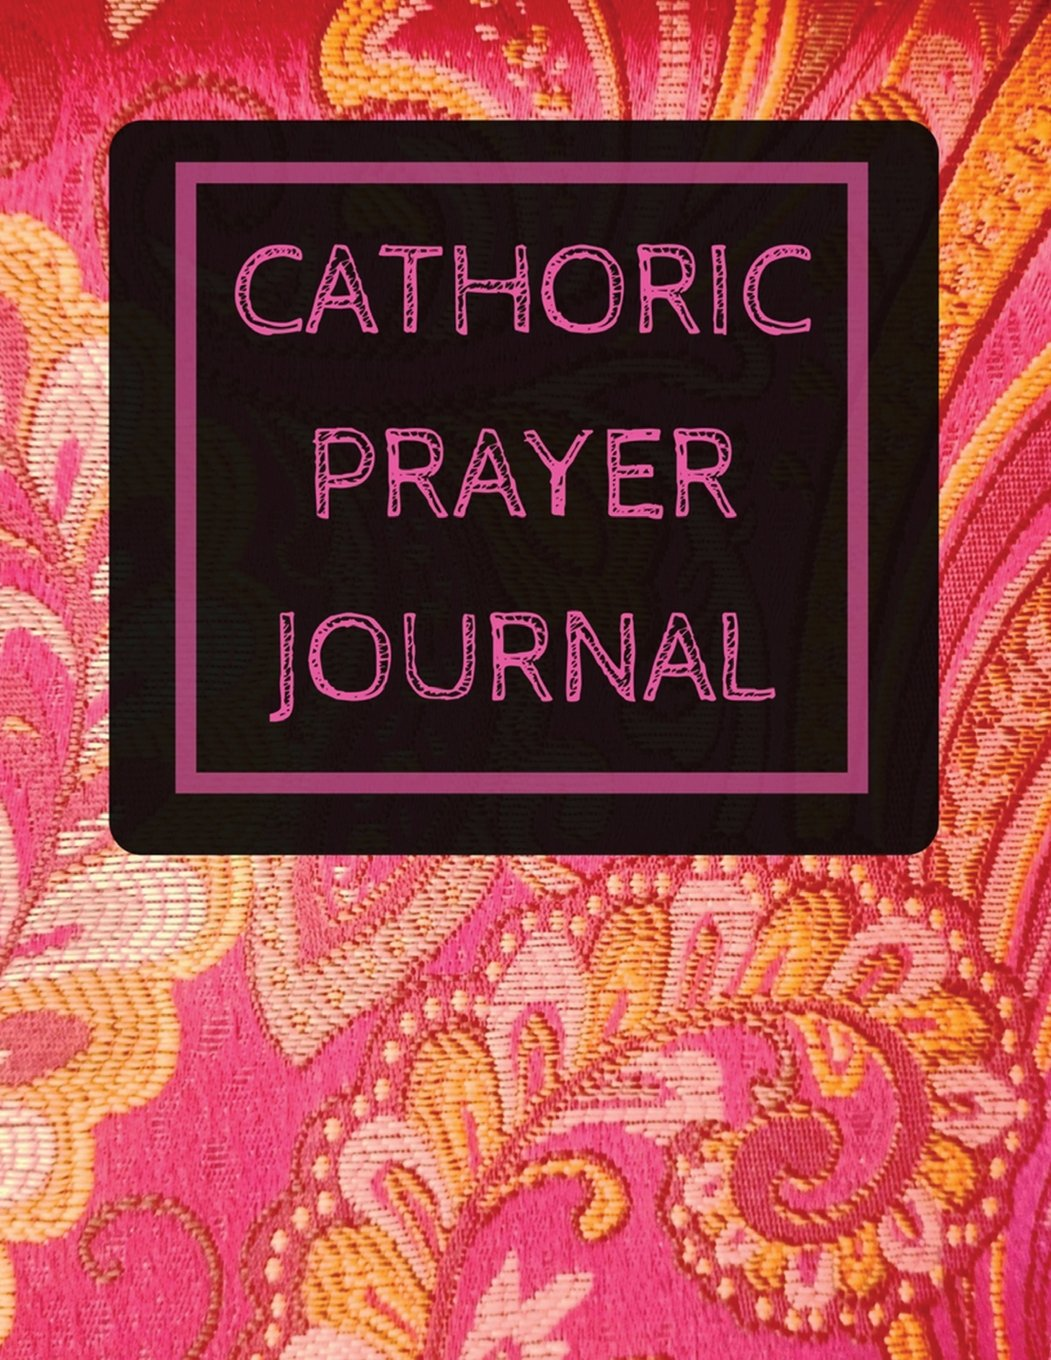 Catholic Prayer Journal: With Calendar 2018-2019 ,Dialy Guide for prayer, praise and Thanks Workbook : size 8.5x11 Inches Extra Large Made In USA (simple prayer journal) (Volume 1)